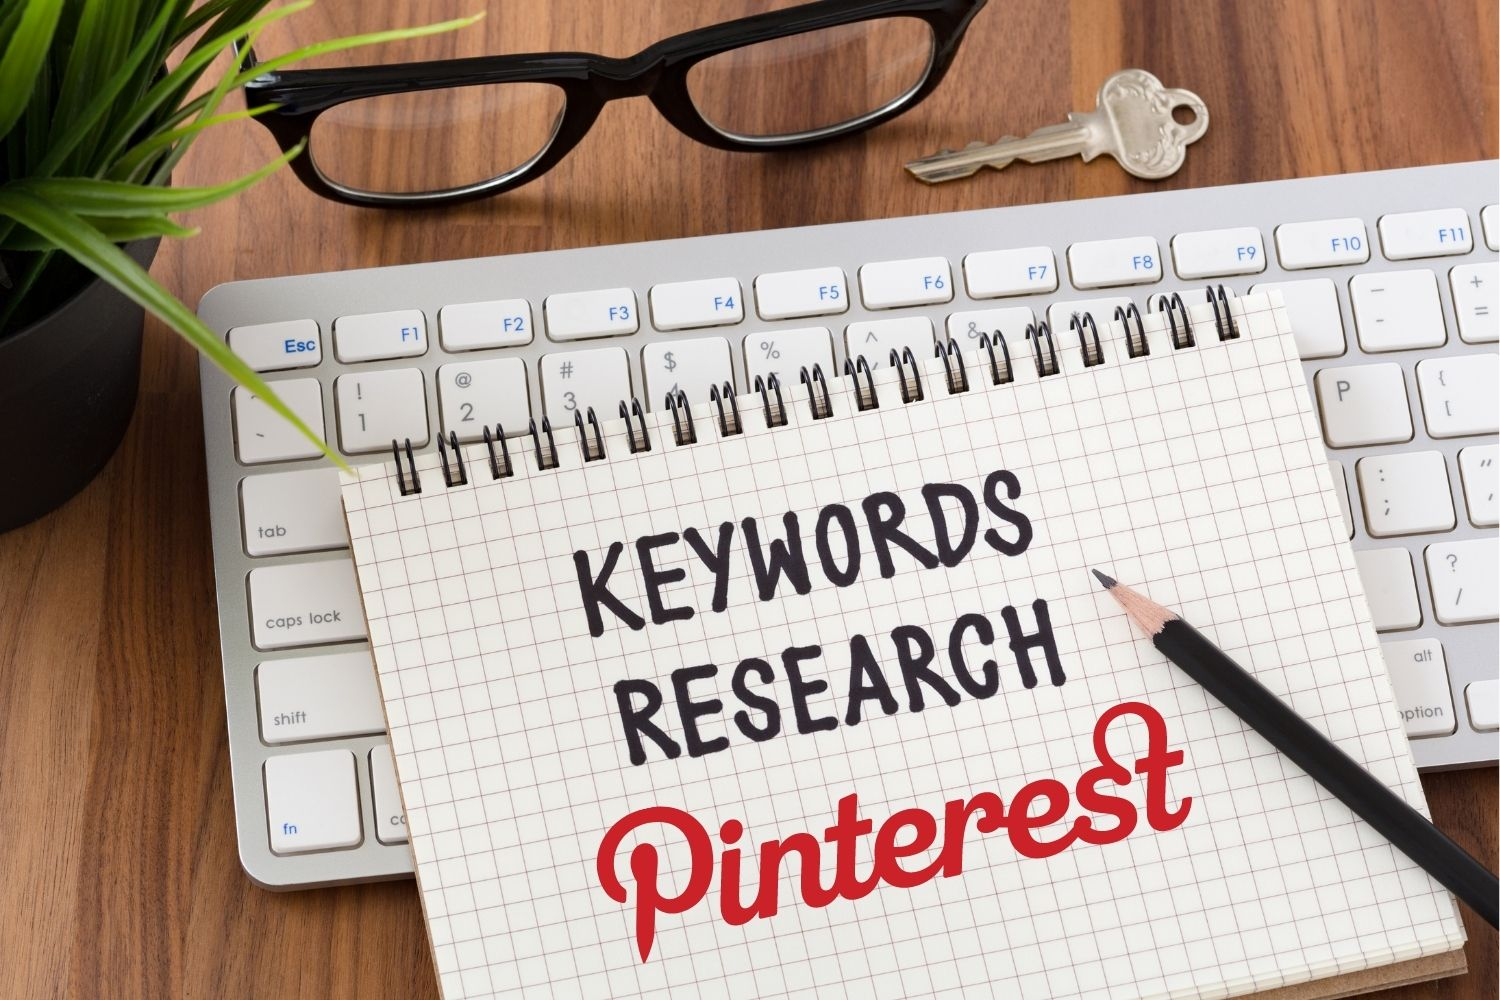 How To Find Pinterest Keywords Using The New Pinterest's Own Keyword Planner Tool – 2021 Version